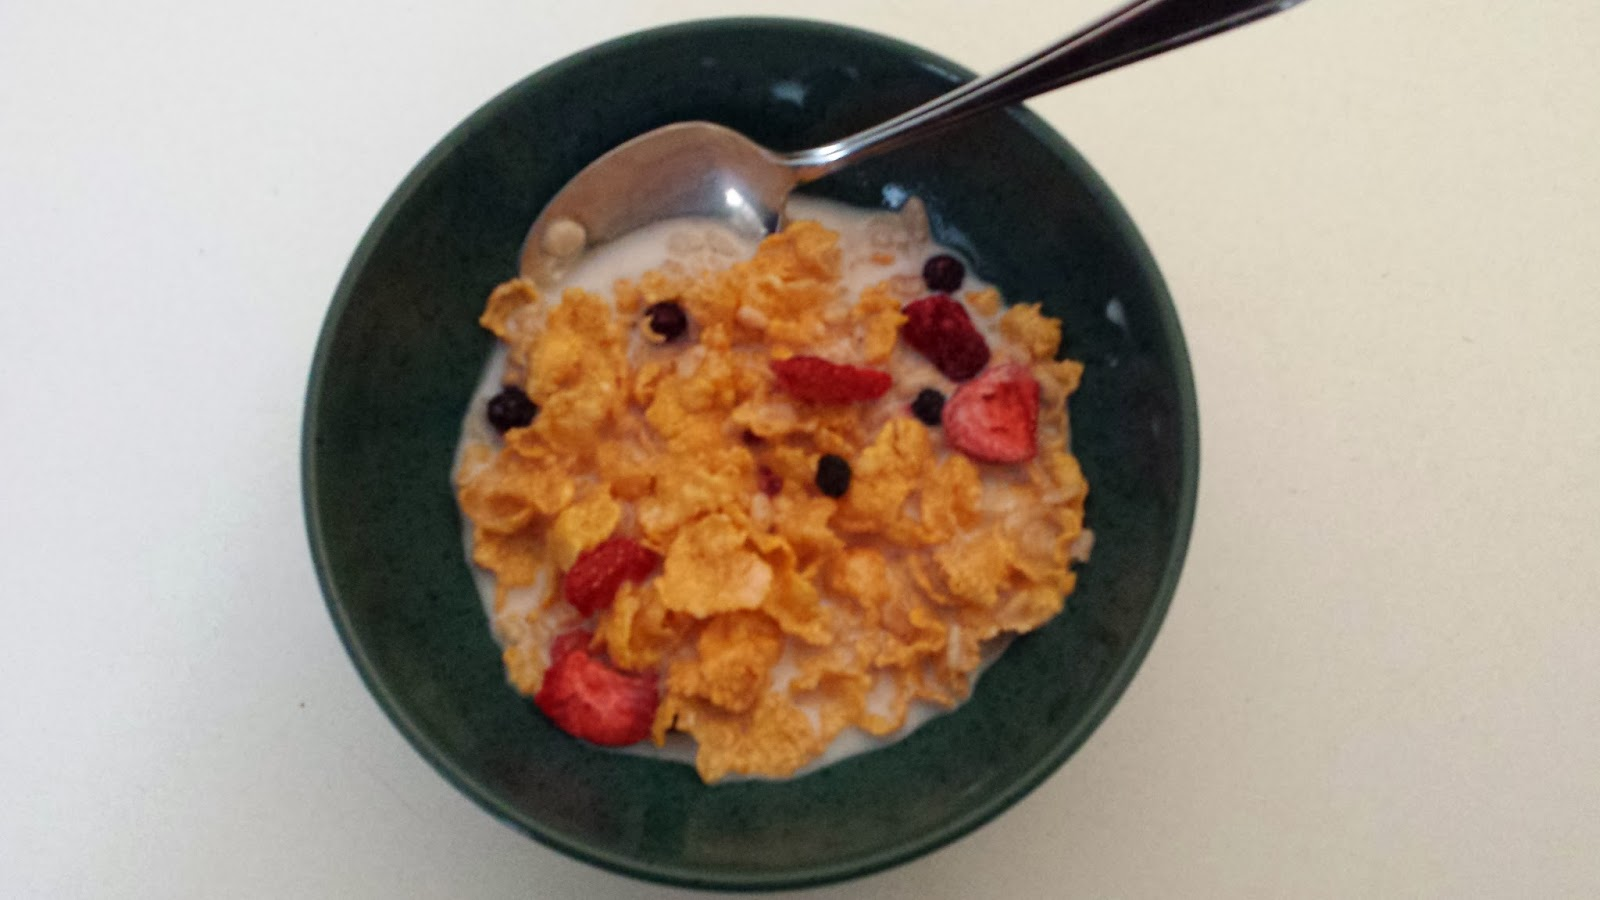 Cathy thinking out loud wildroots tripleberry crisp gluten free i found this cereal to be very tasty and the flakes stayed crisp in milk and did not get soggy after 5 seconds i hate when the flakes get soggy before you ccuart